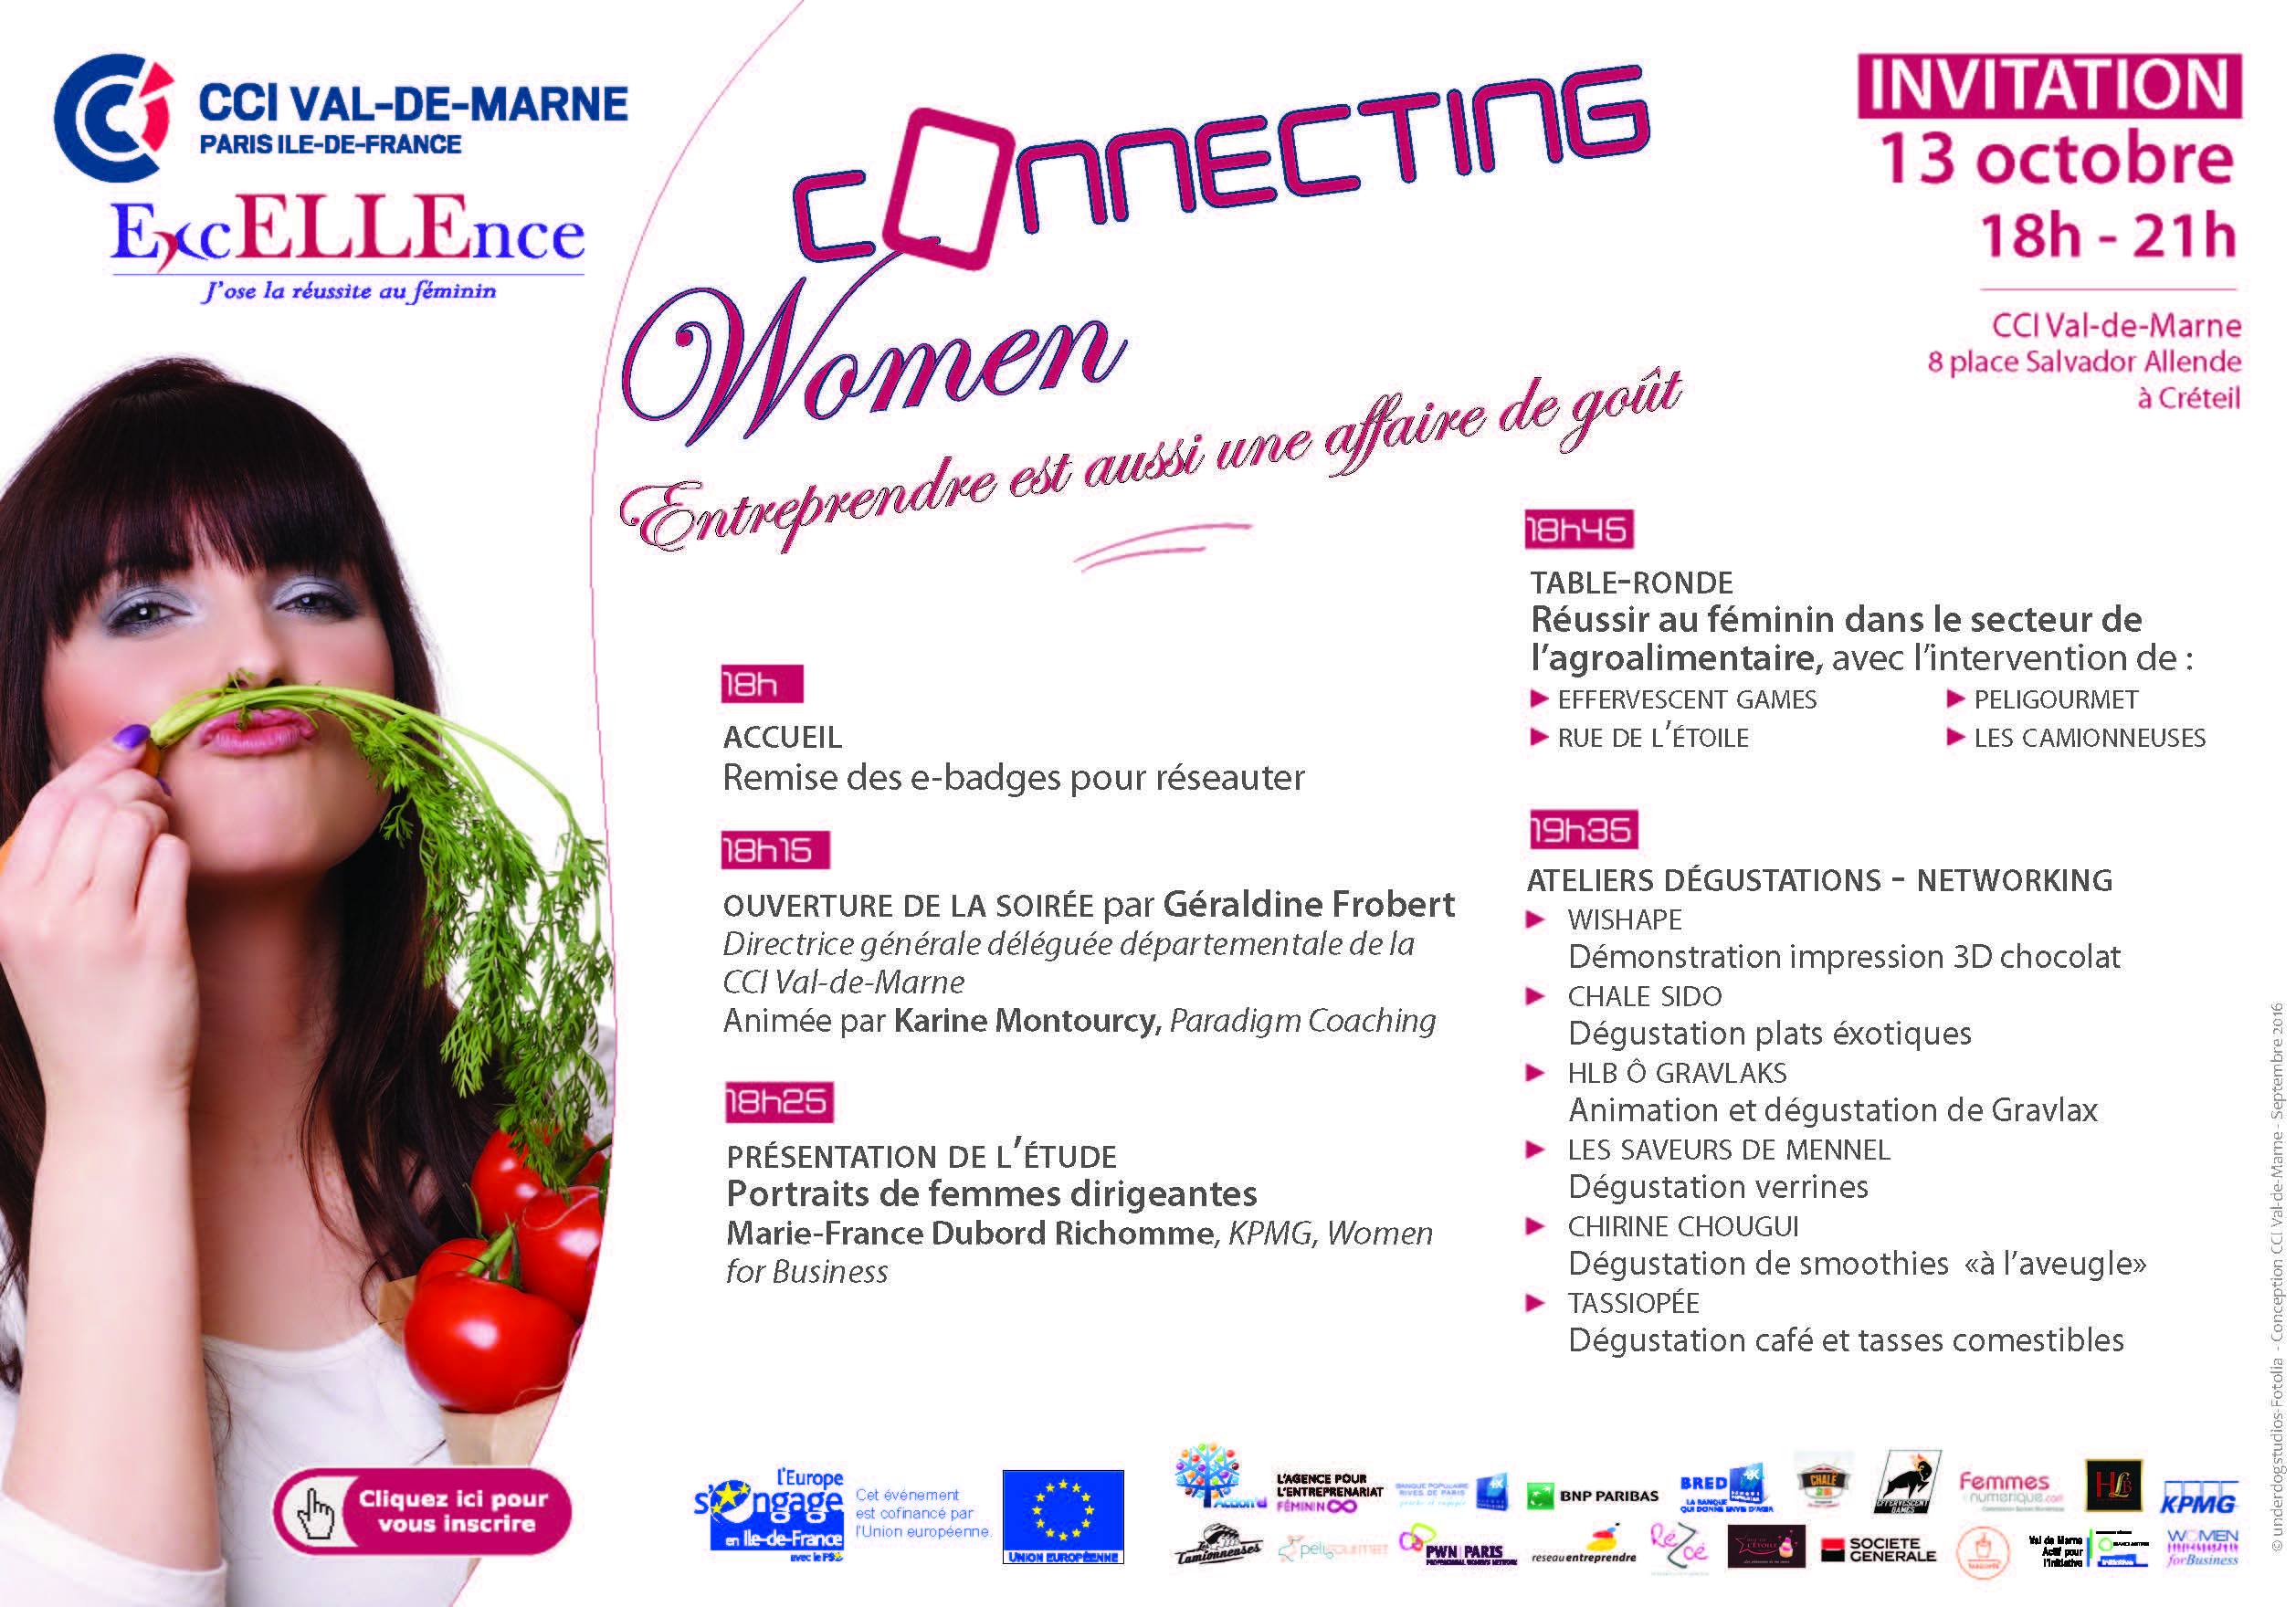 Invitation Connecting Women 13 octobre 2016 VF